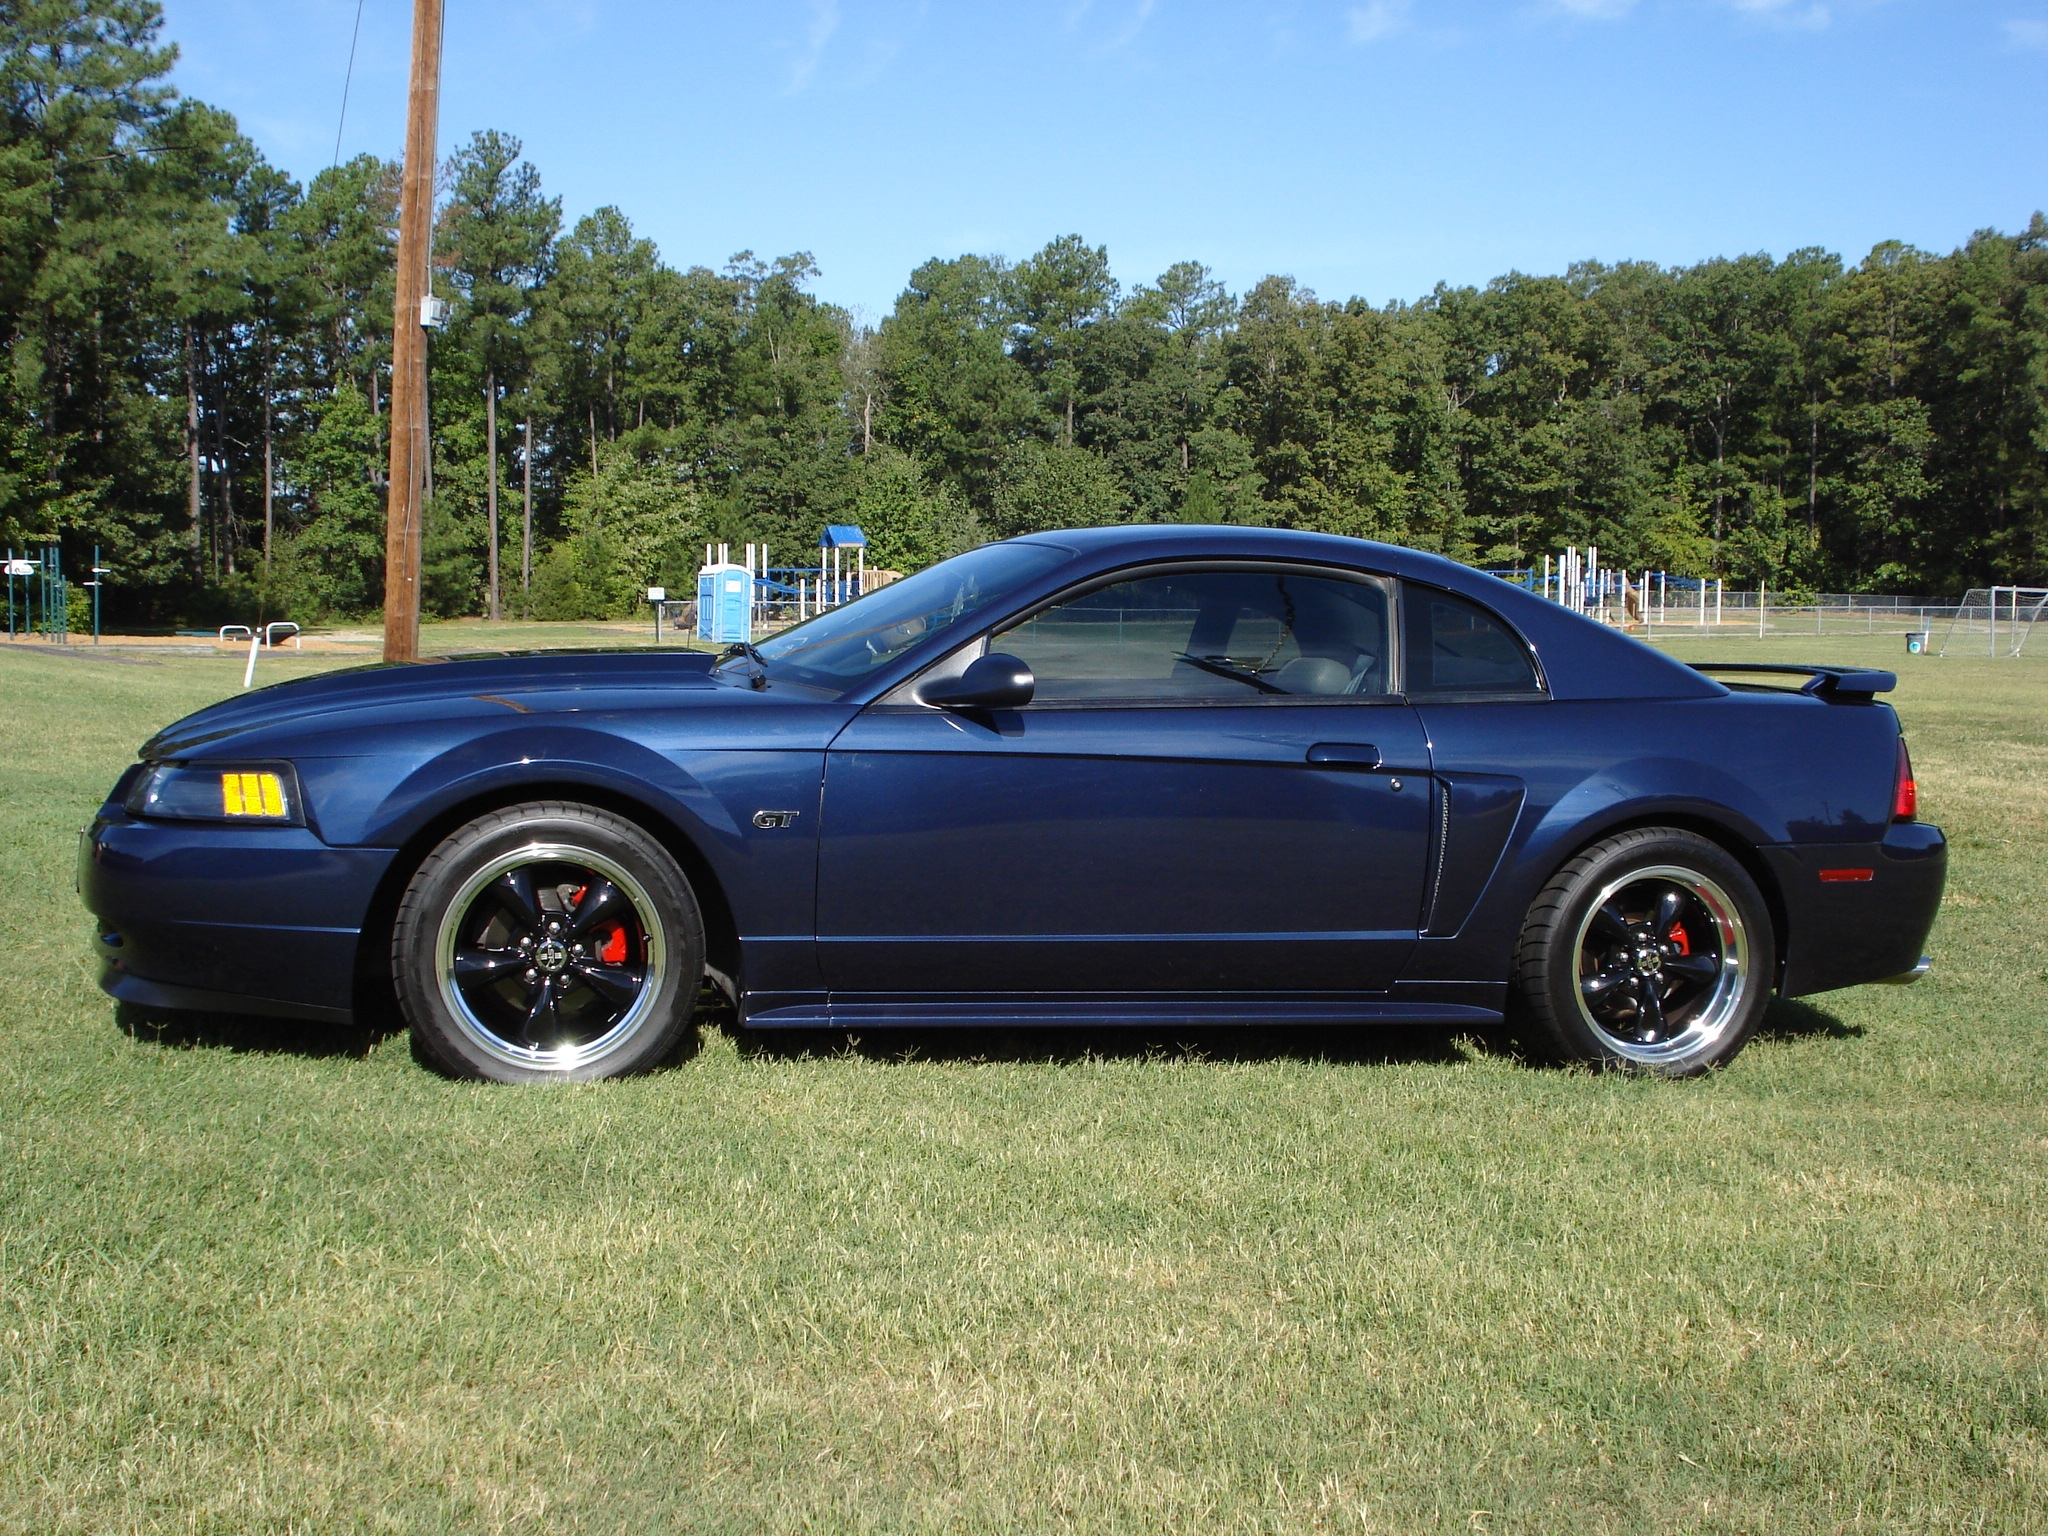 2001 Ford Mustang #8